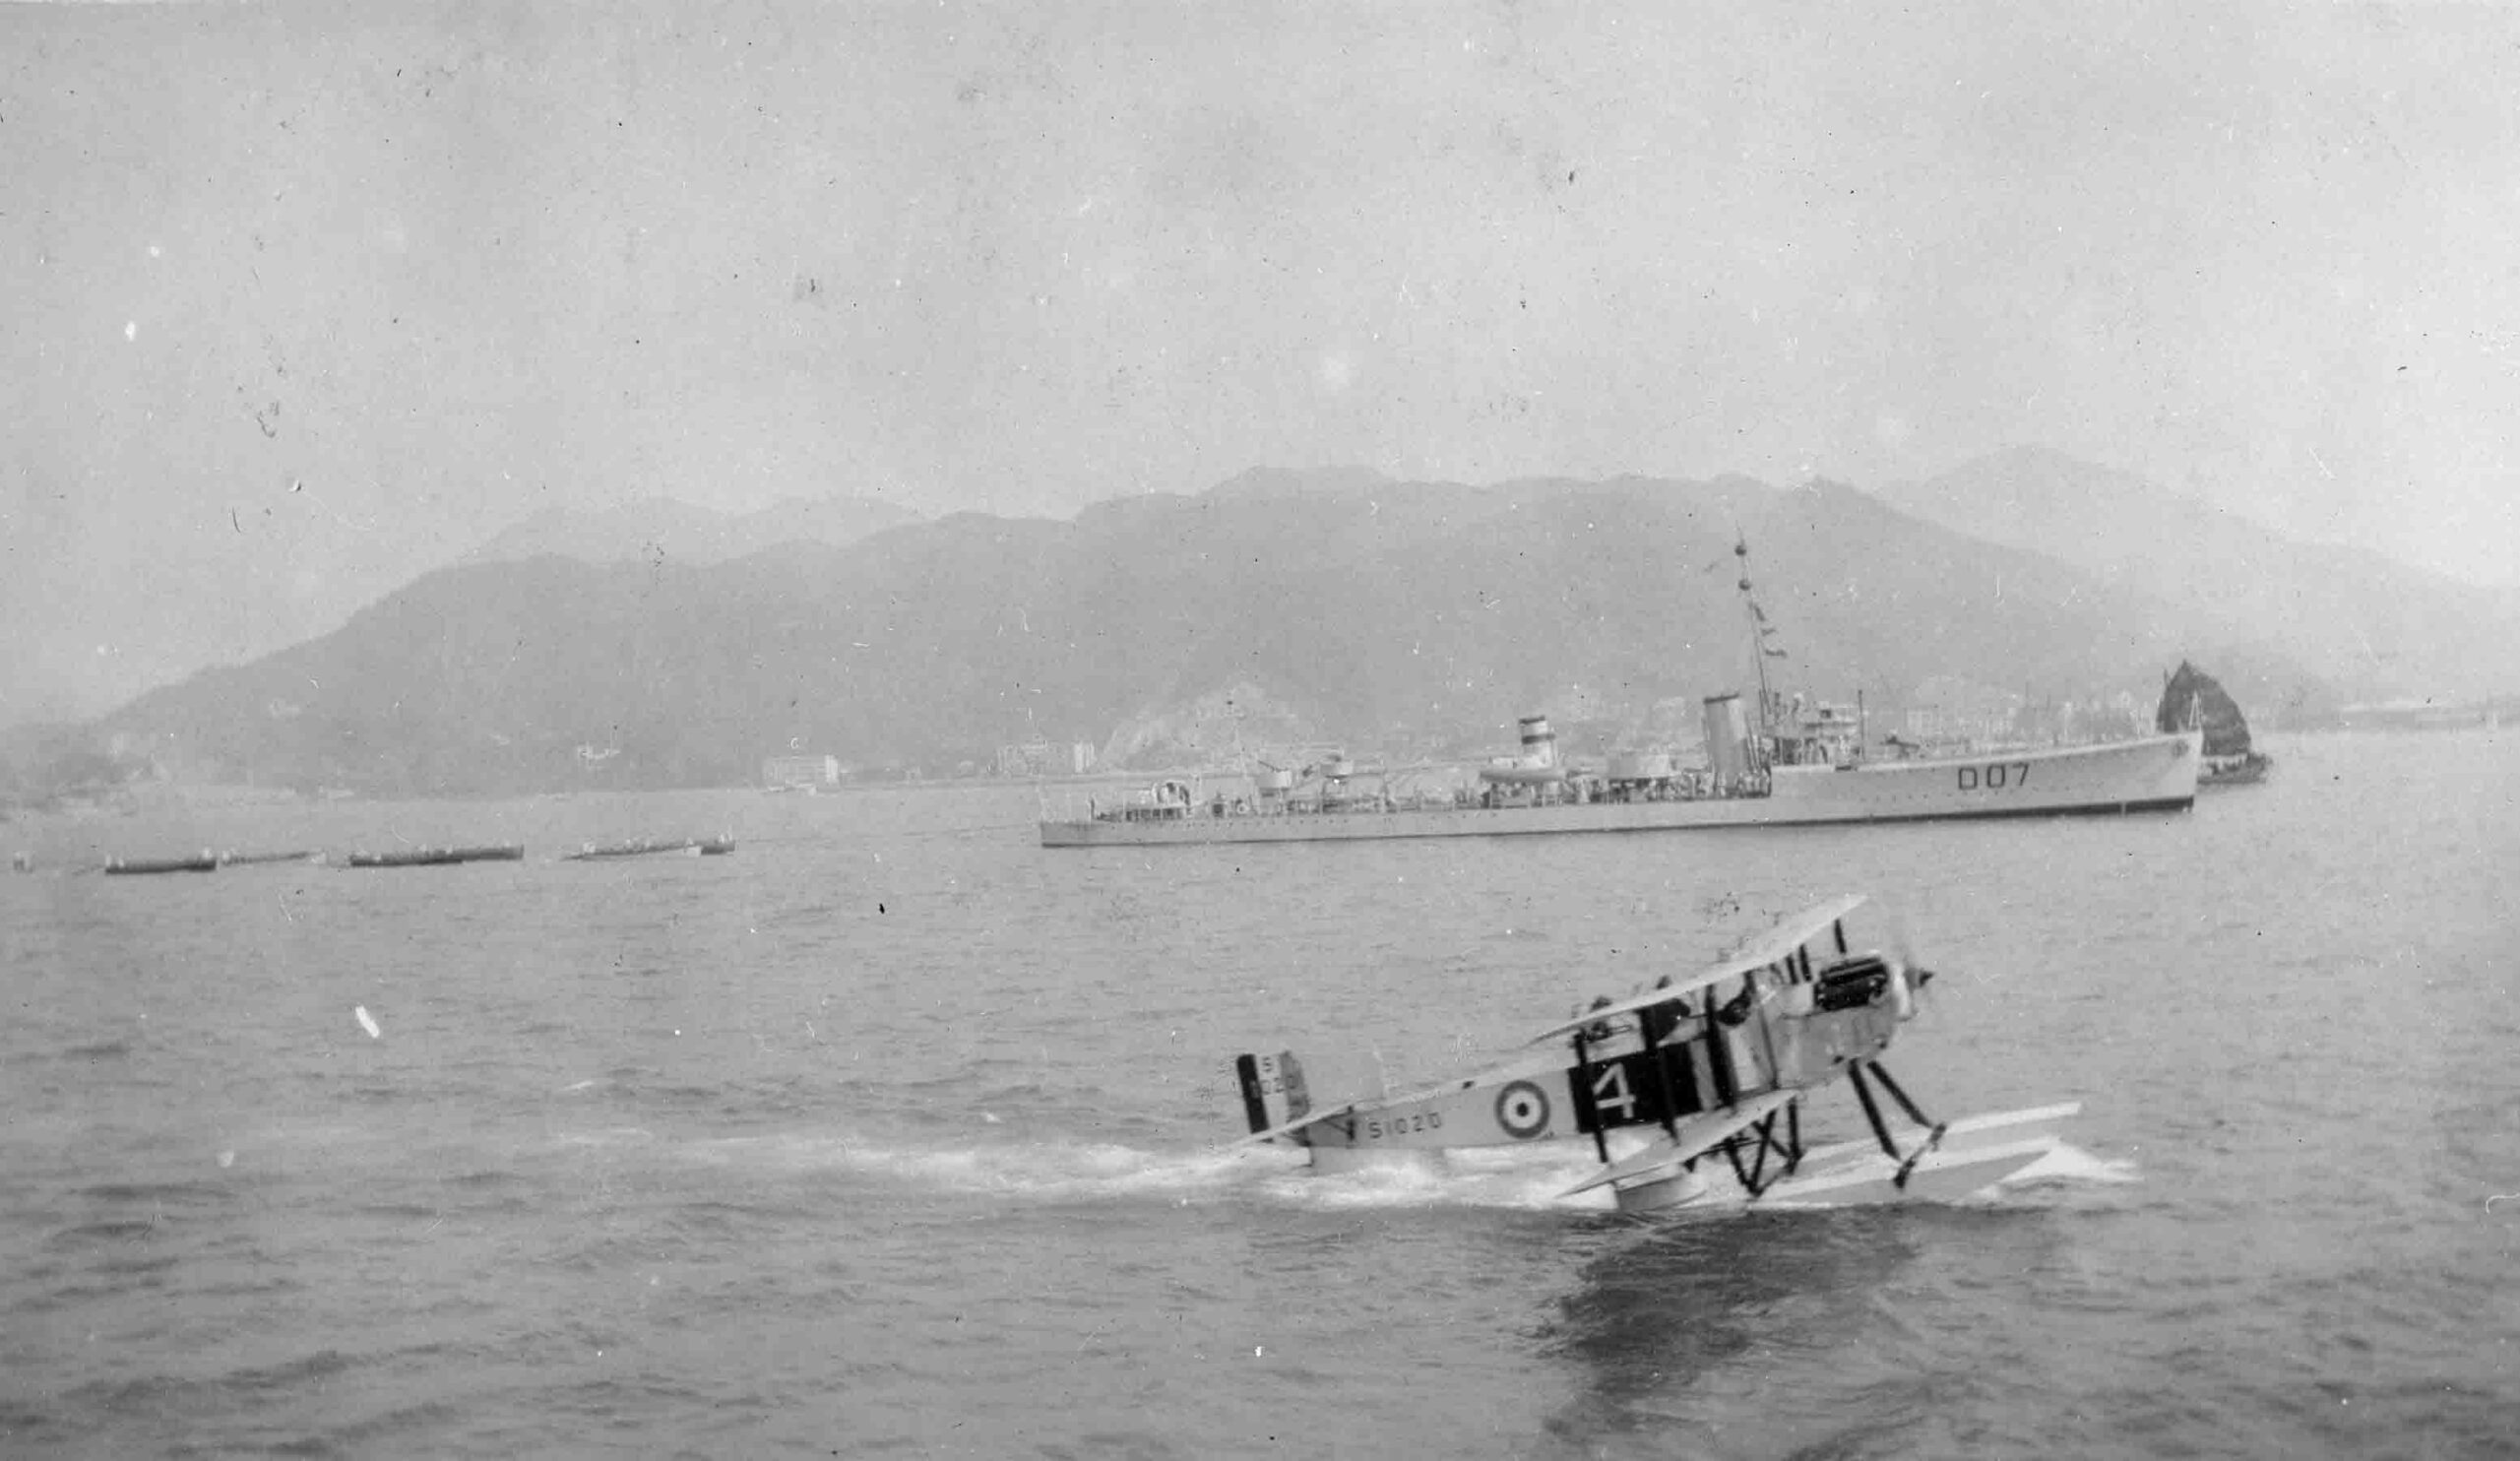 Fairey IIID taxying on water at Hong Kong in front of County Class destoyer, circa 1925 (P022428)